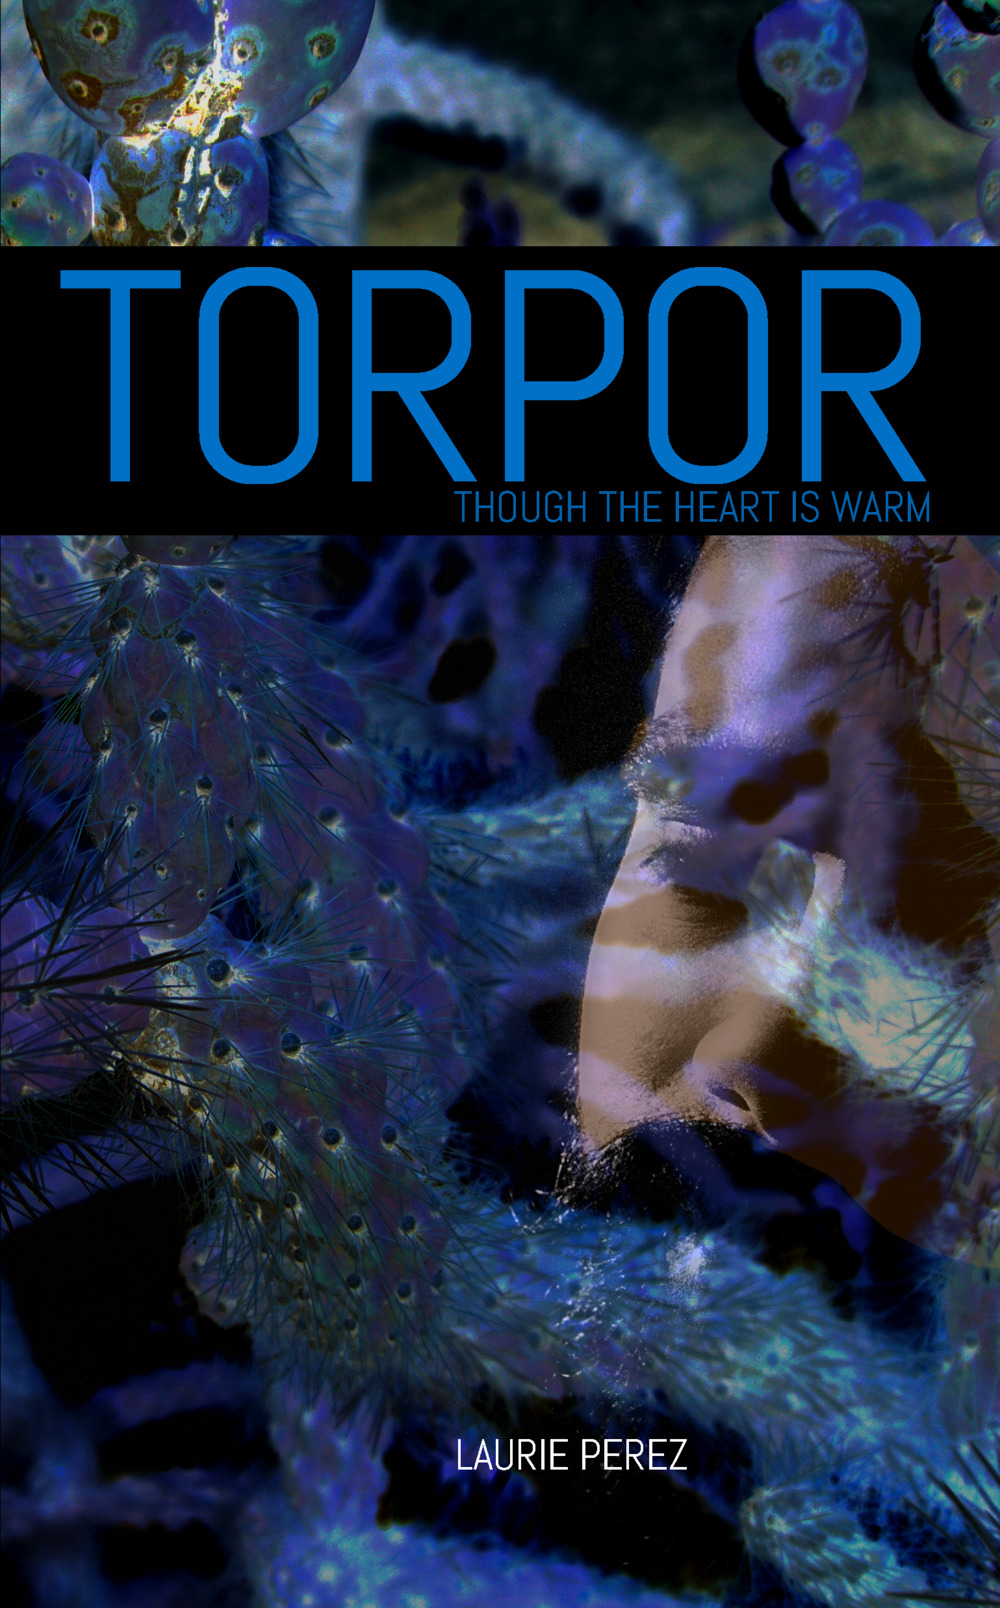 Torpor: Though the Heart Is Warm